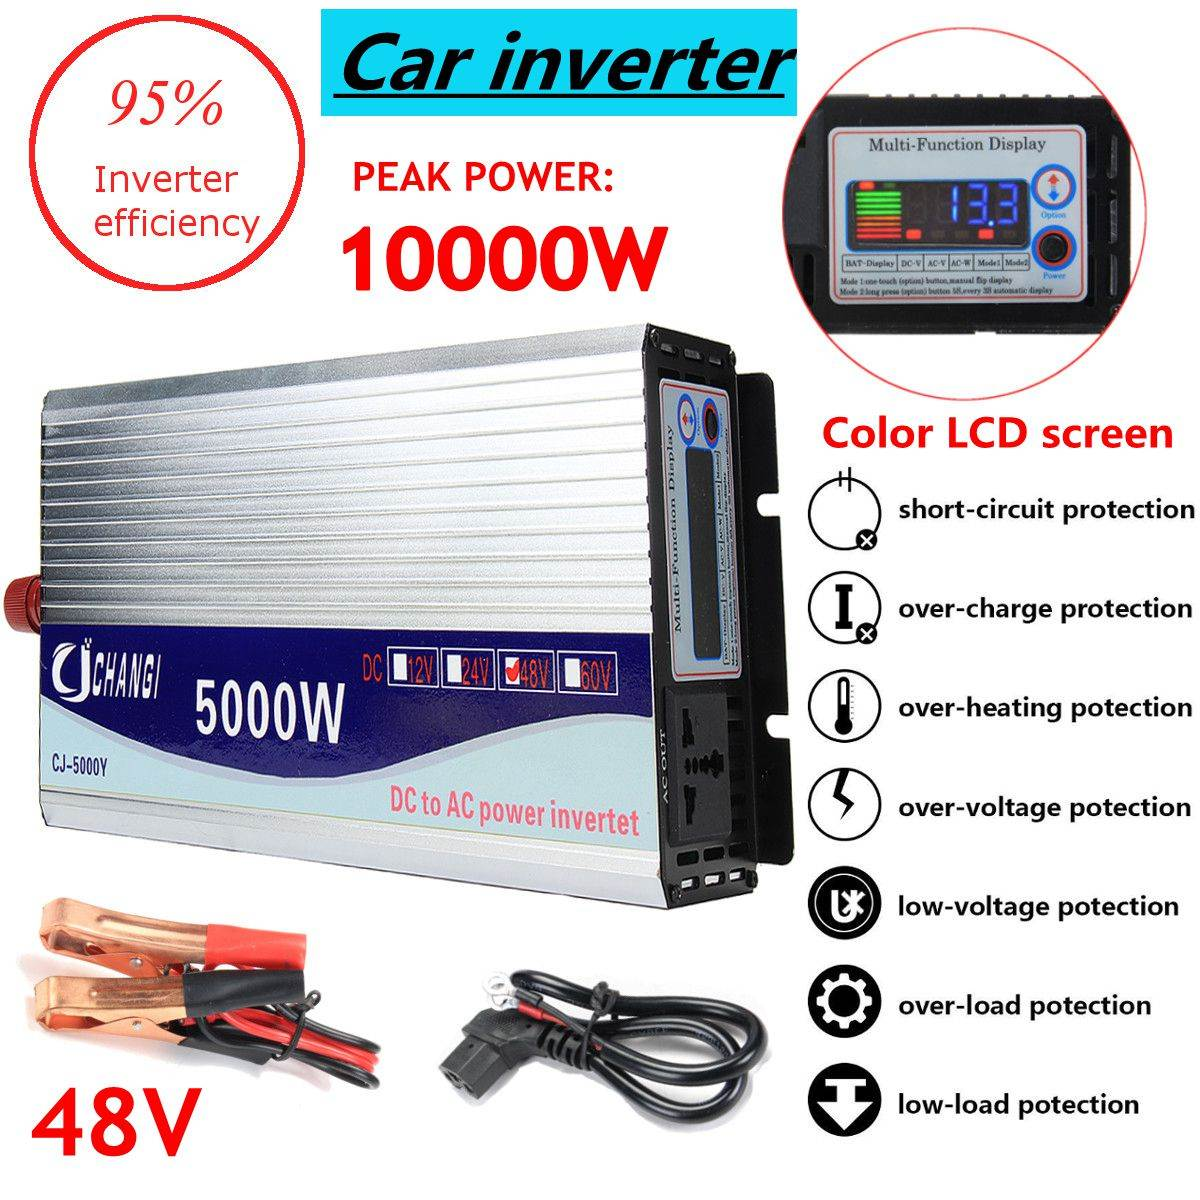 Inverter 12V/24V/48V 220V 5000W 10000W Peak- Modified Sine Wave Power Voltage Transformer Inverter Converter + LCD Display